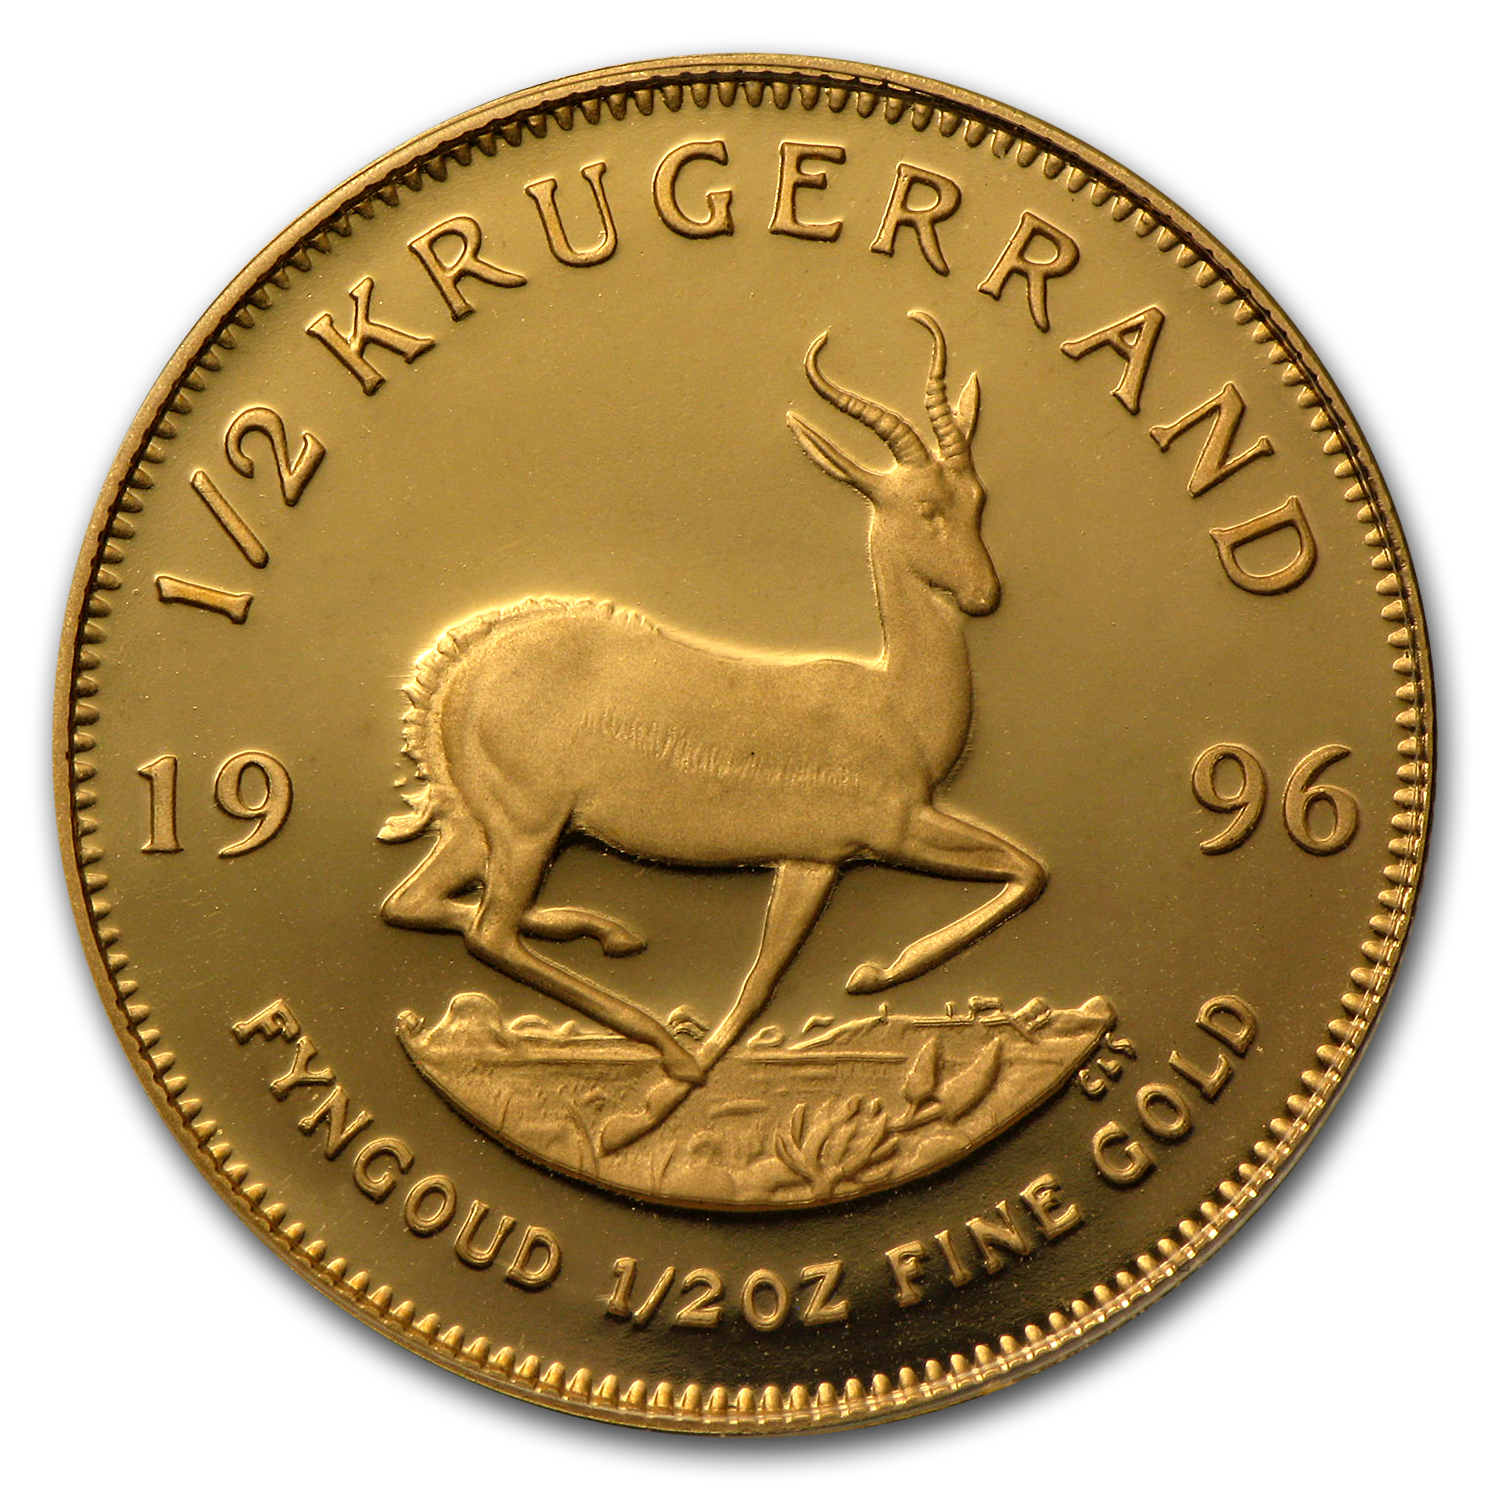 1996 South Africa 1/2 oz Proof Gold Krugerrand